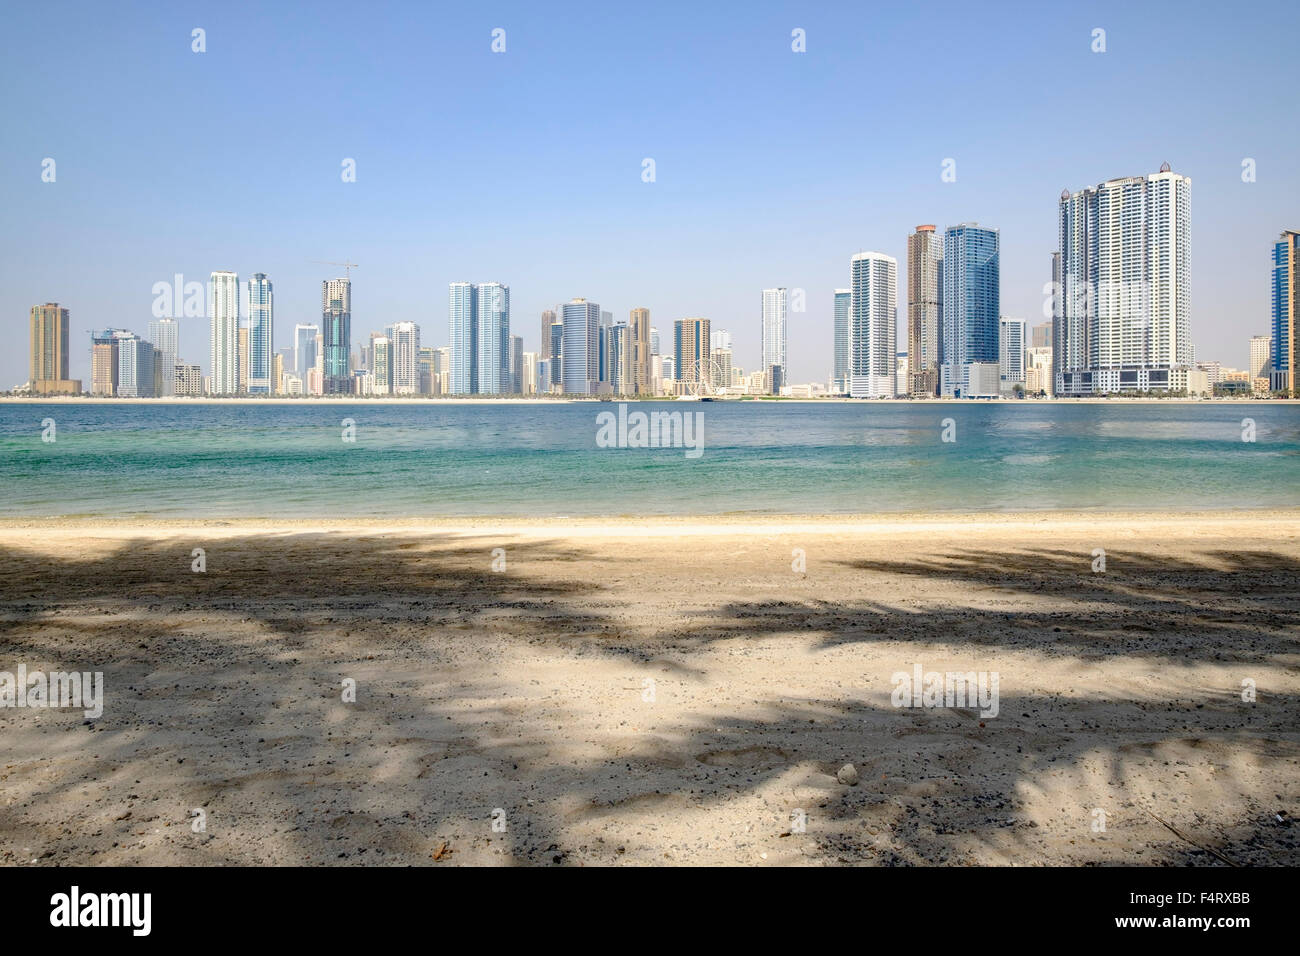 Daytime skyline view of beach and modern high-rise apartment buildings along Corniche in Sharjah United Arab Emirates - Stock Image